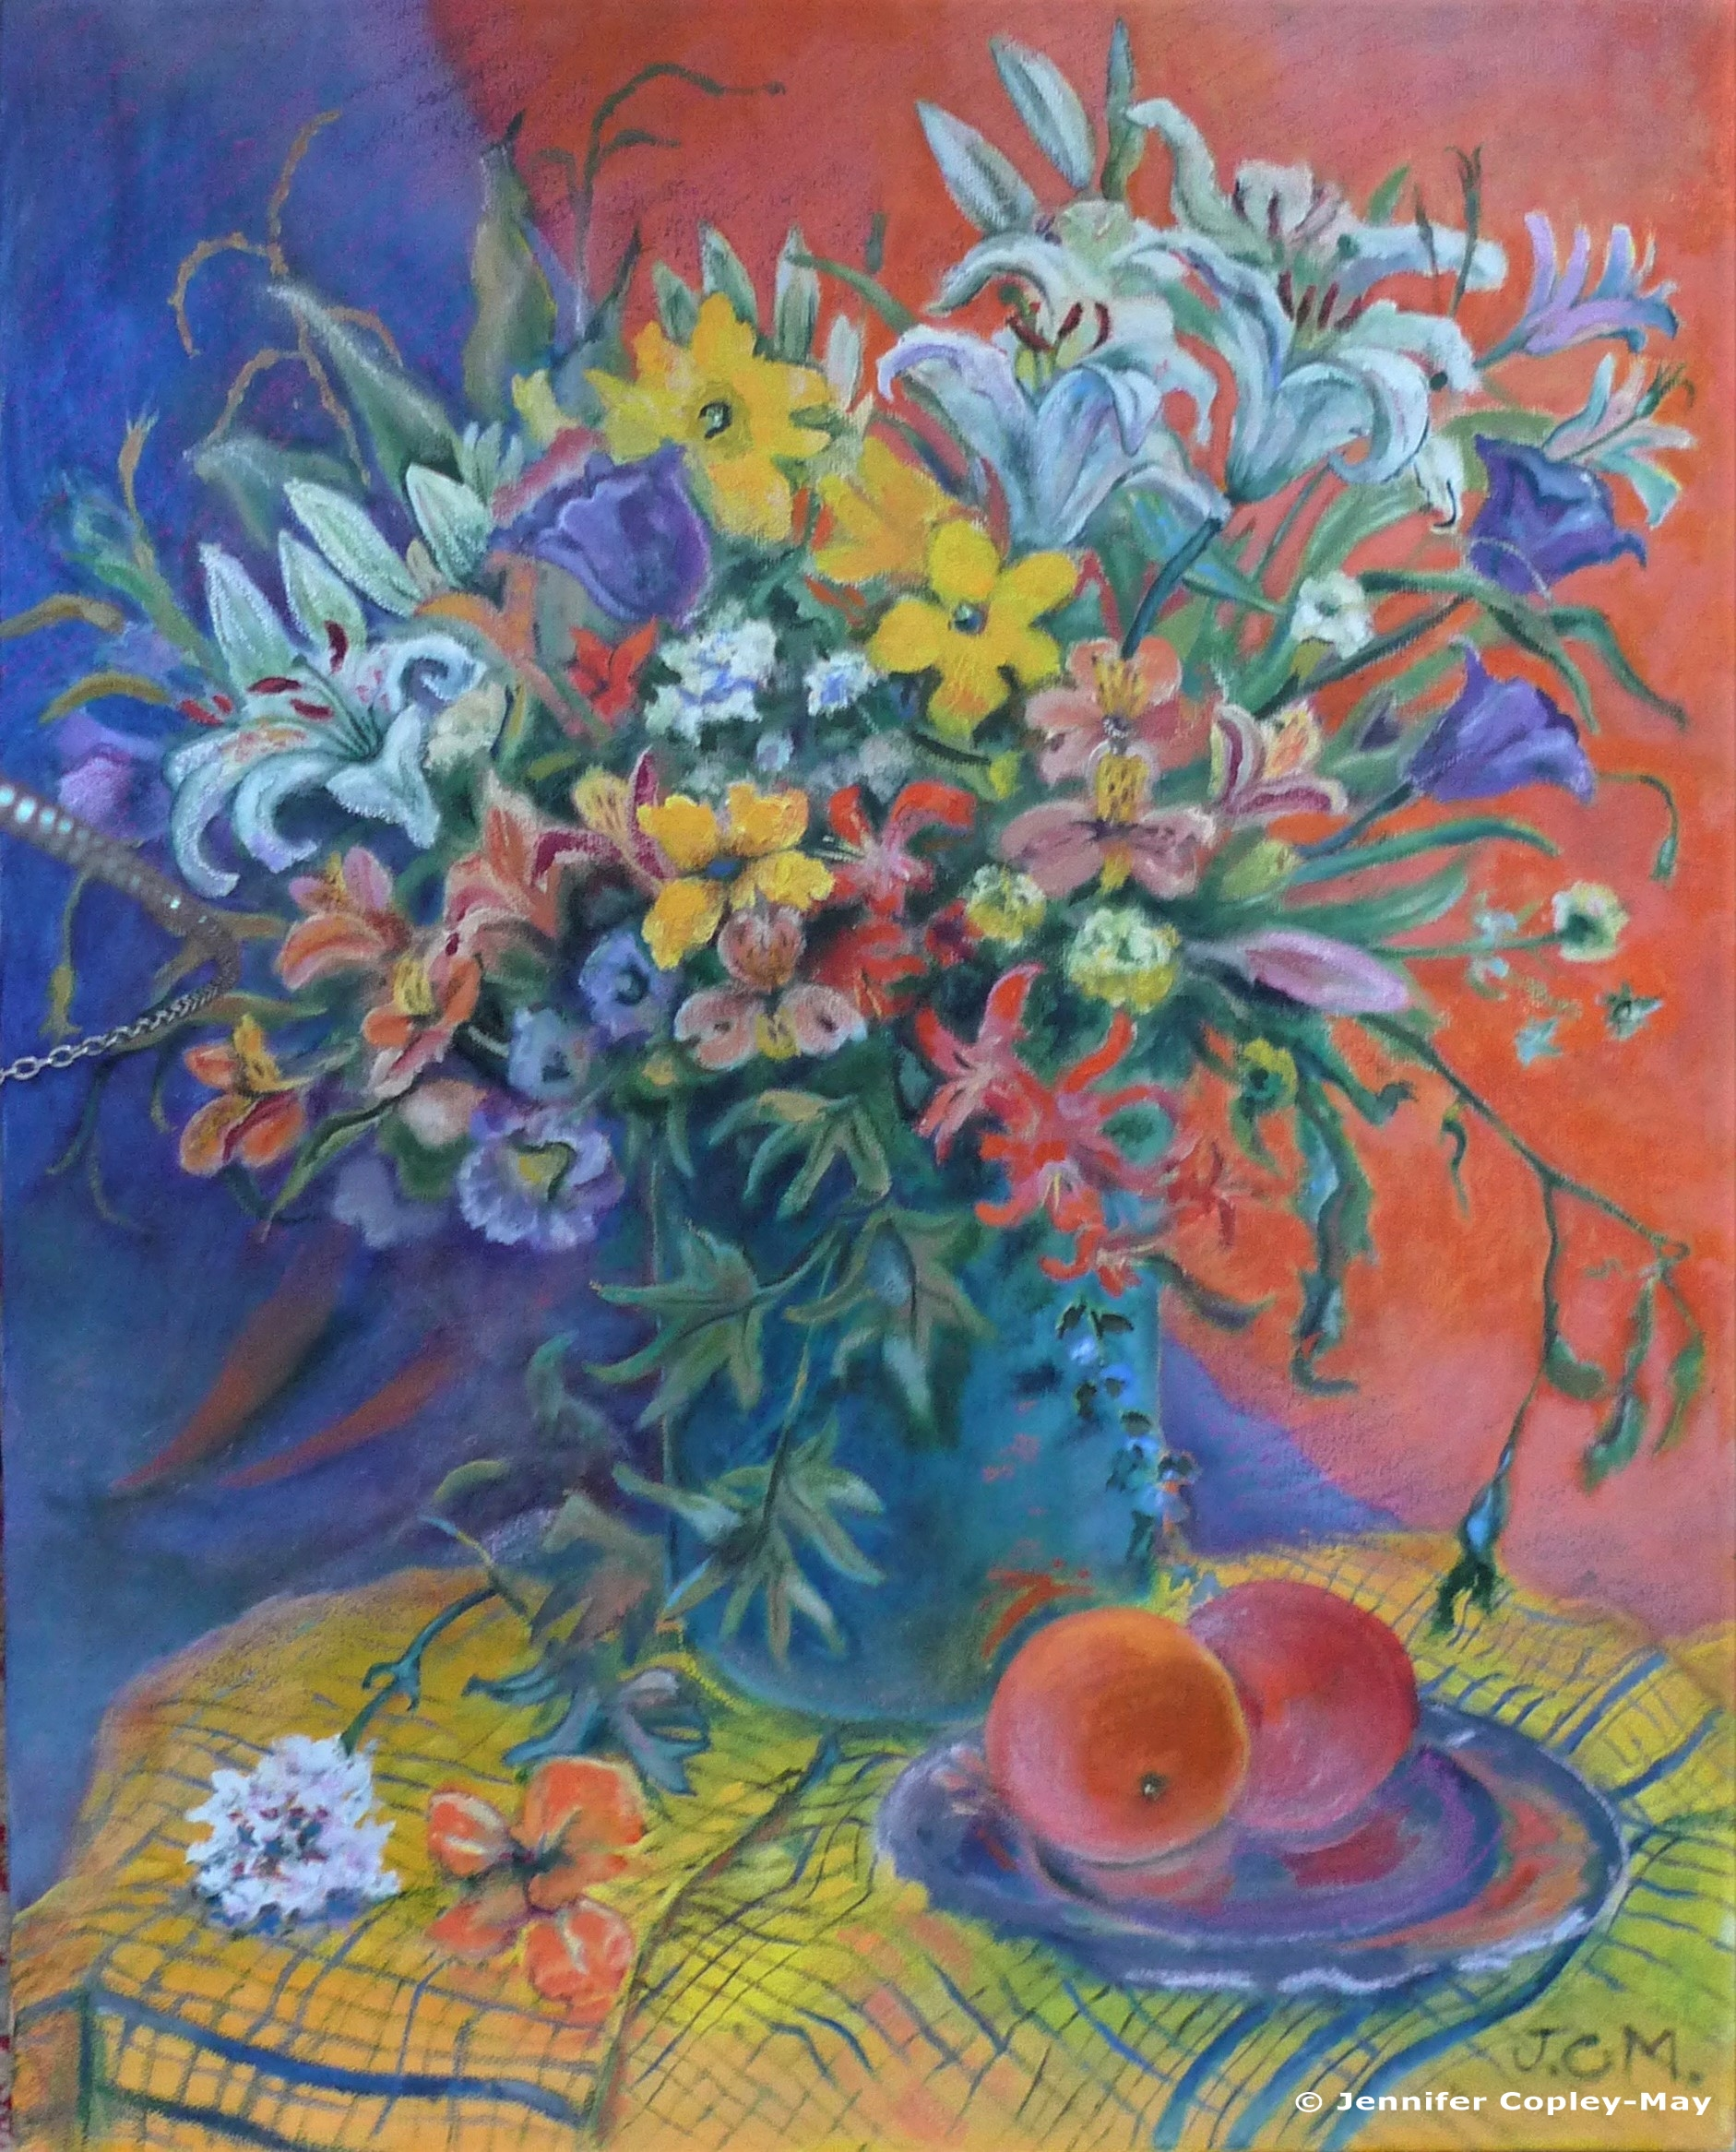 Jennifer Copley-May, Mixed Bouquet with Oranges, oil and pastel on canvas